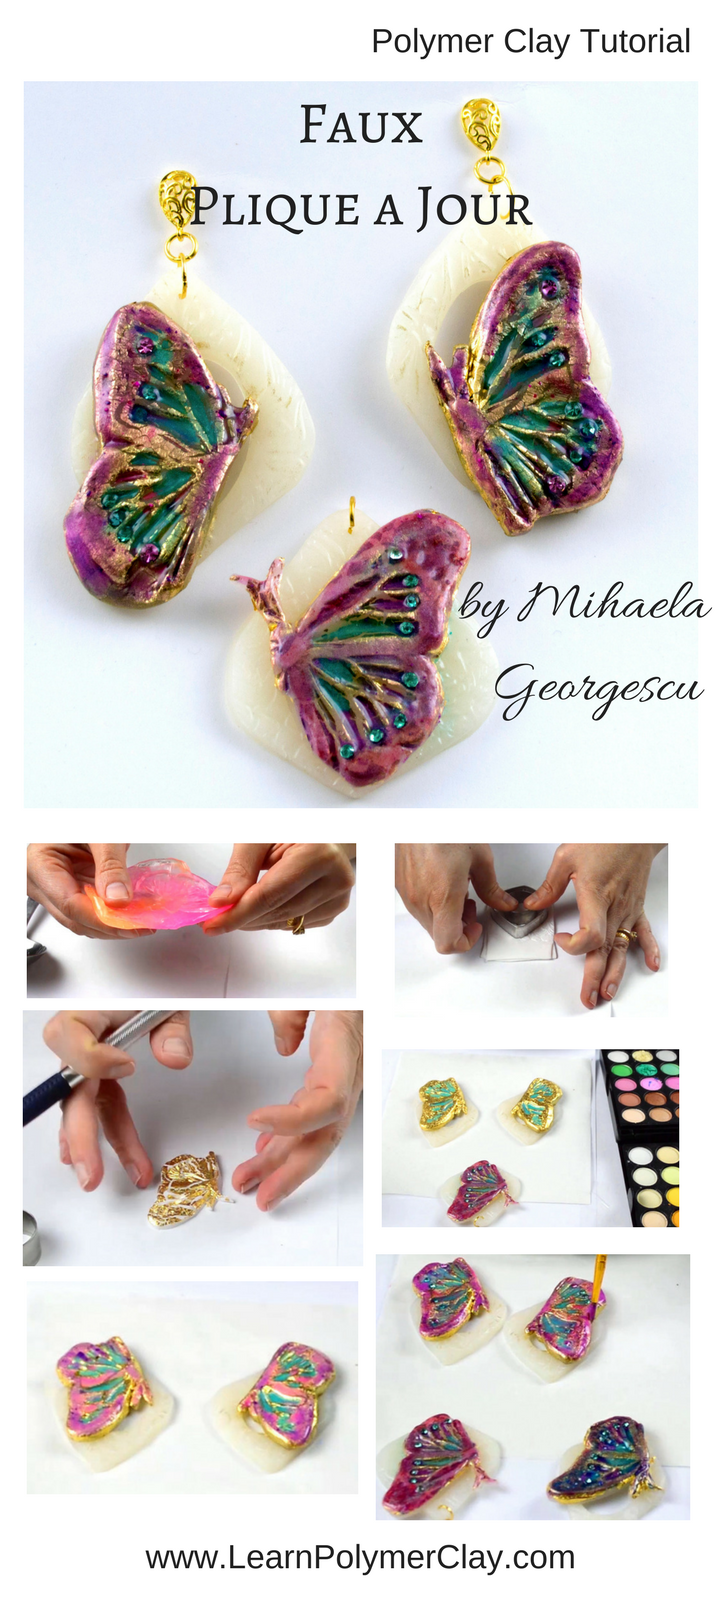 Explore the possibilities of painting onto polymer clay! Achieve a faux enamel look using eyeshadows, Triple Thick varnish and polymer clay! Take this inspiration and make amazing polymer clay jewelry pieces!